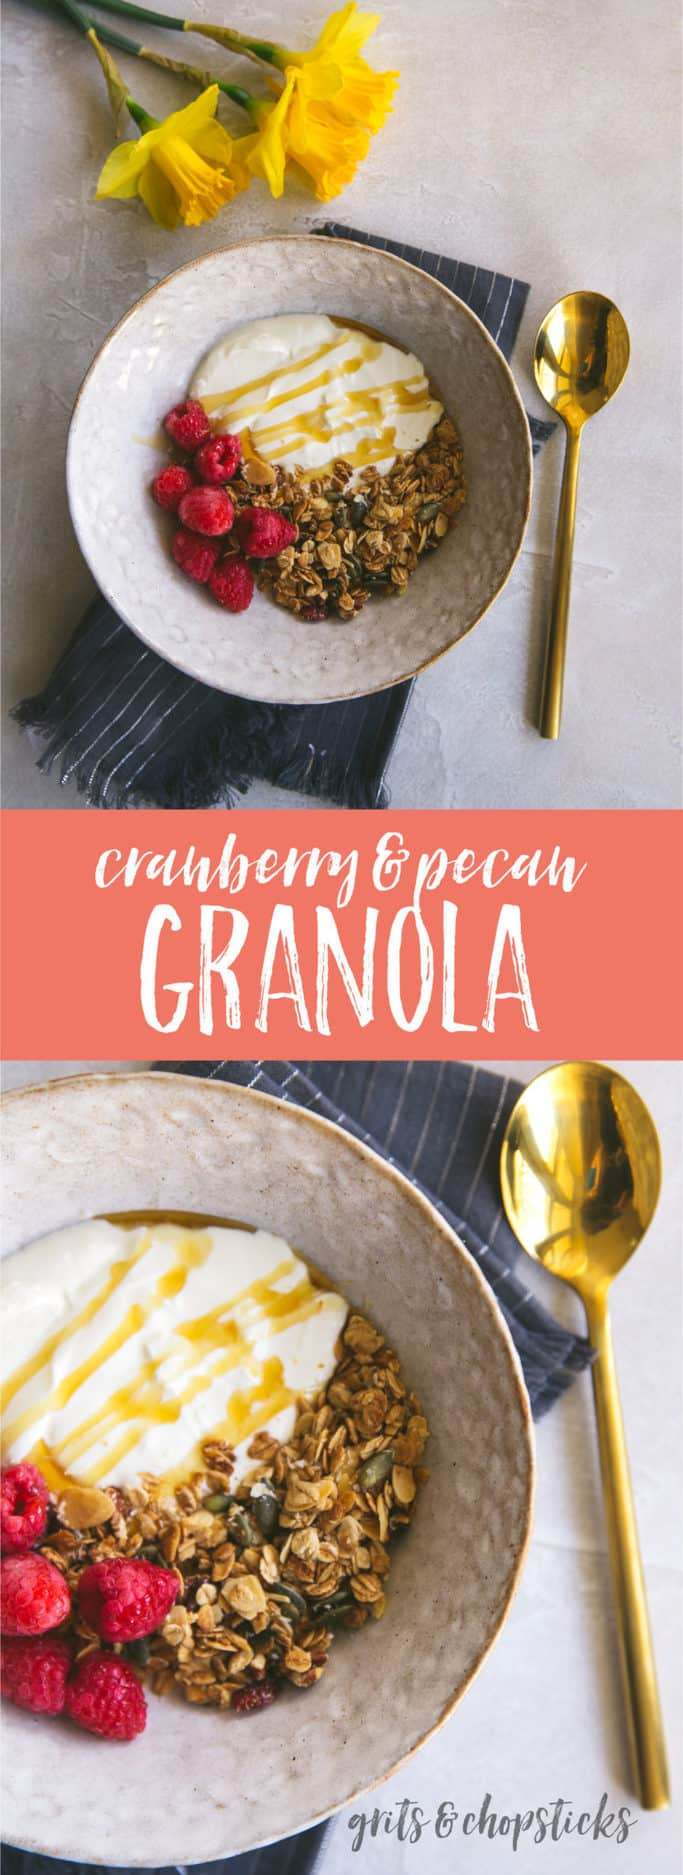 This cranberry pecan granola is really easy to make and is a great way to start your mornings!